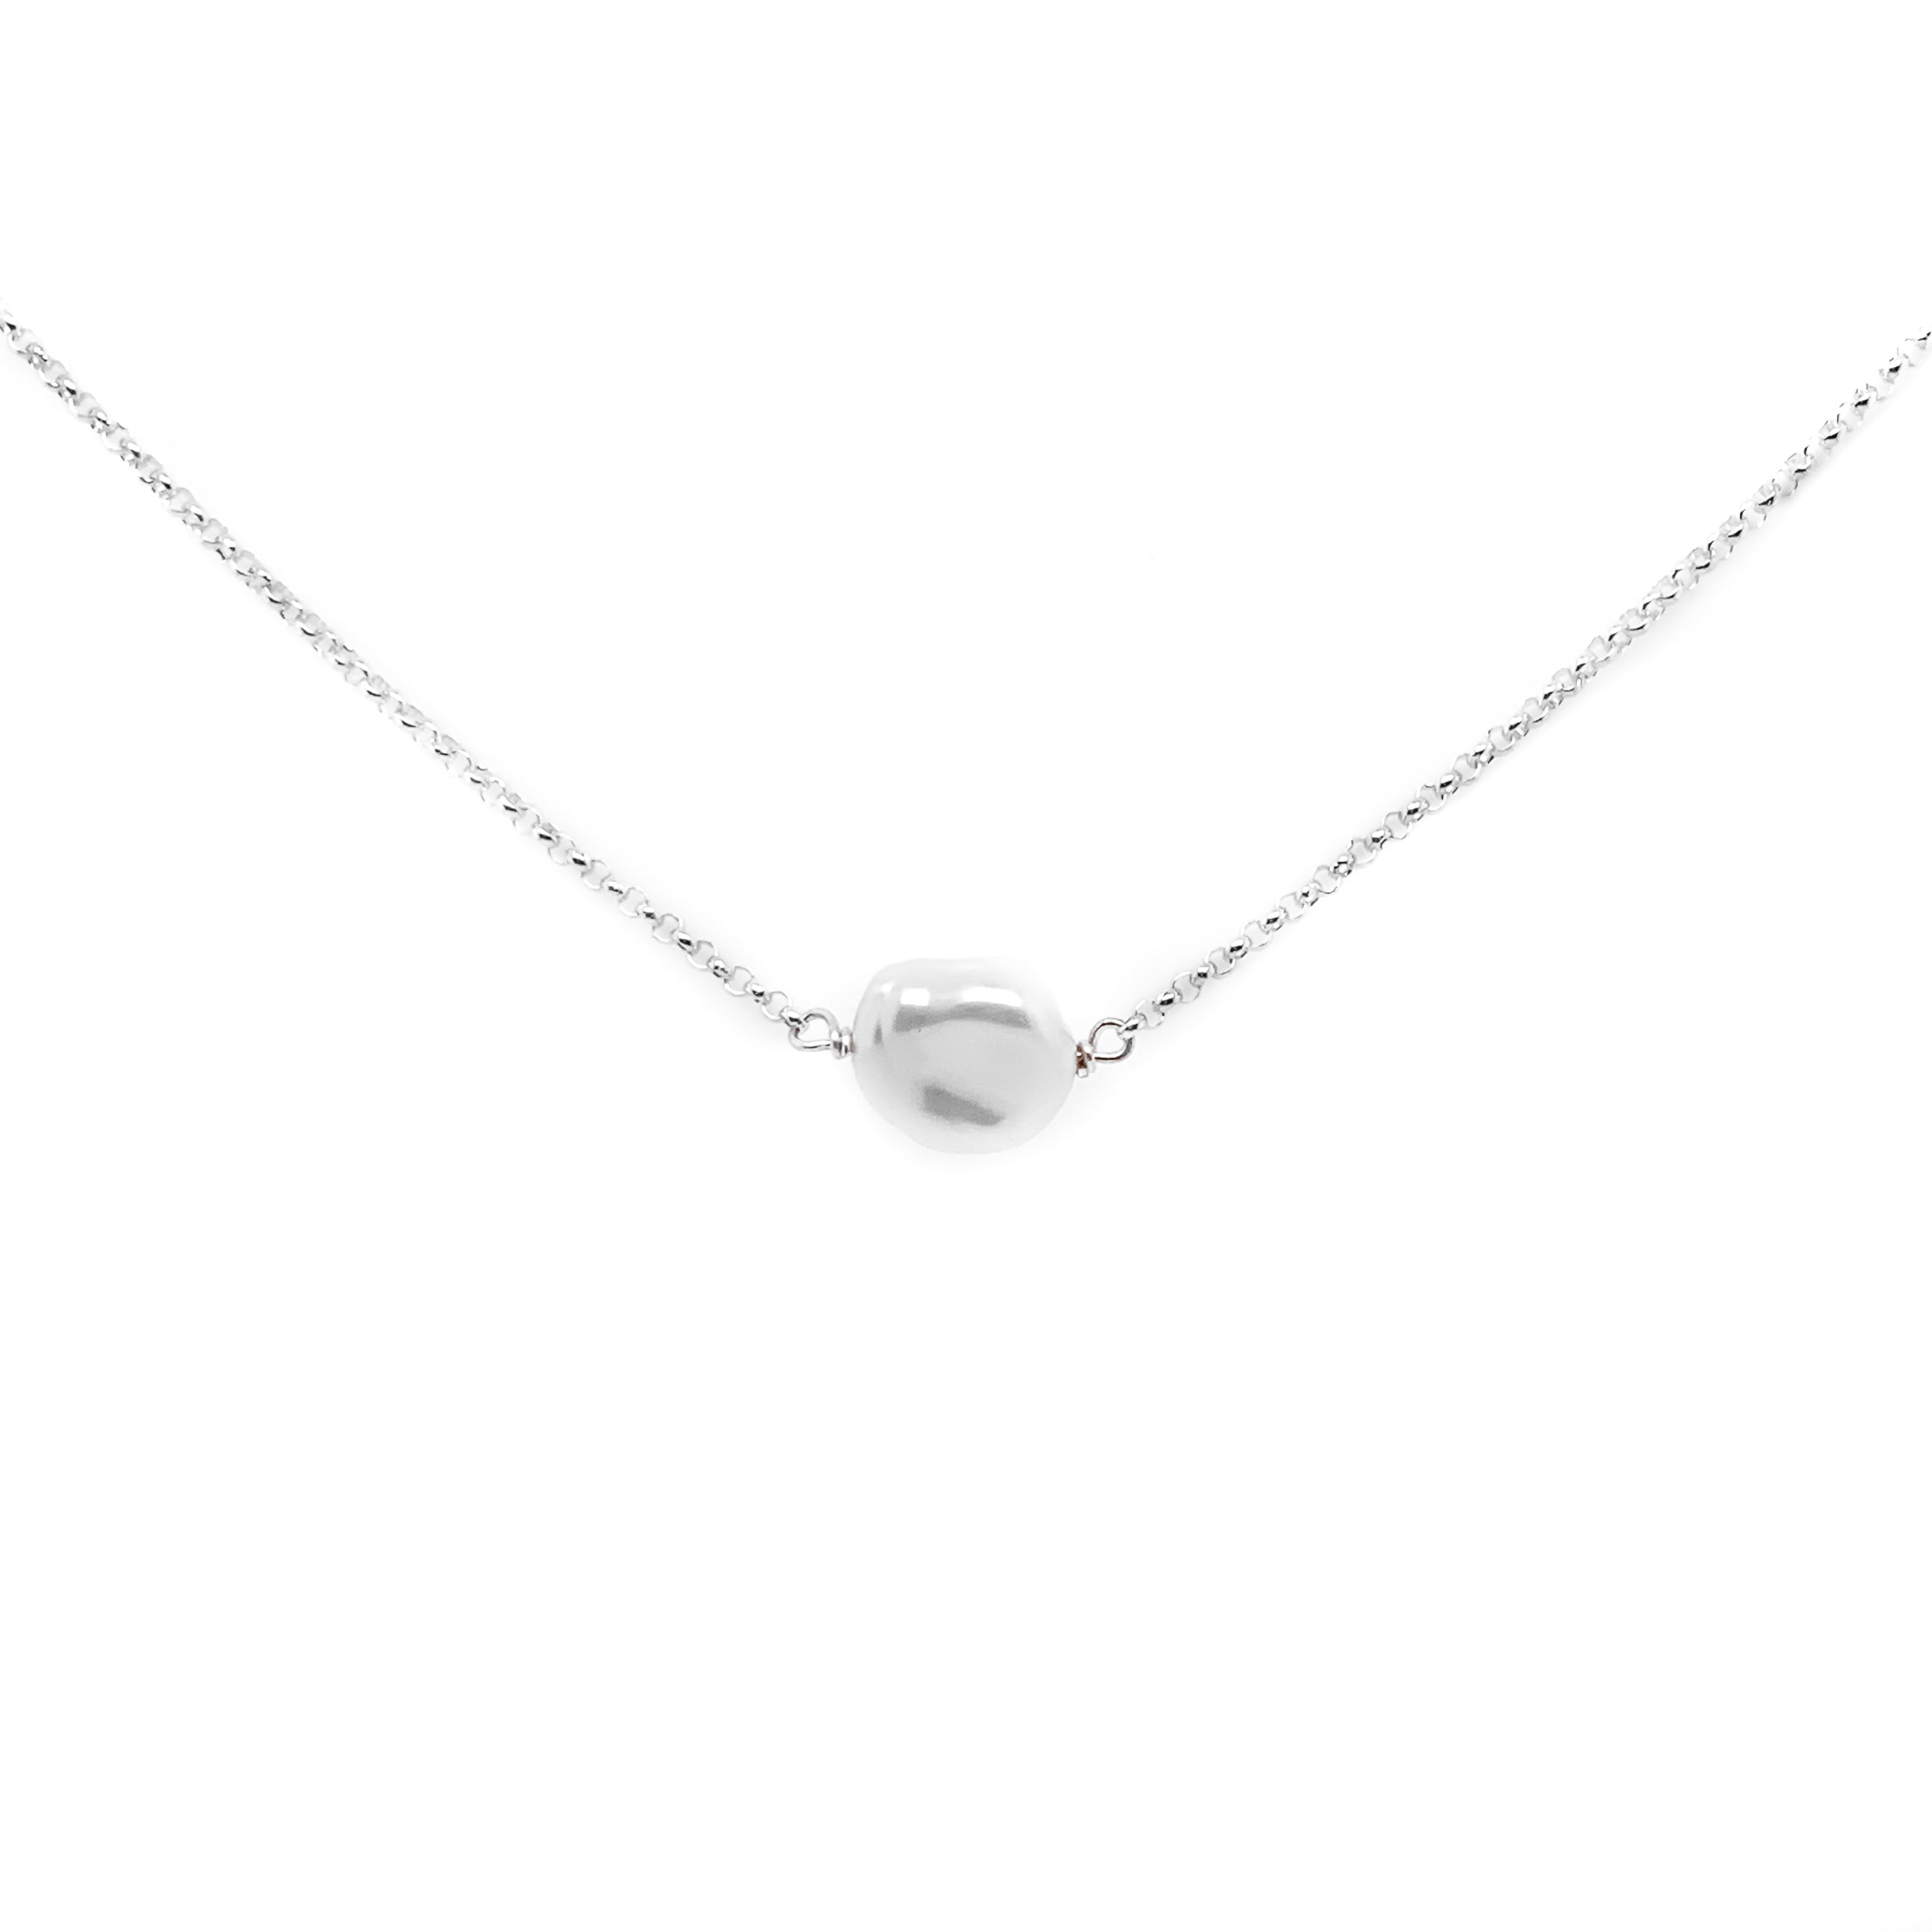 a small natural pearl on a silver chain with a white background